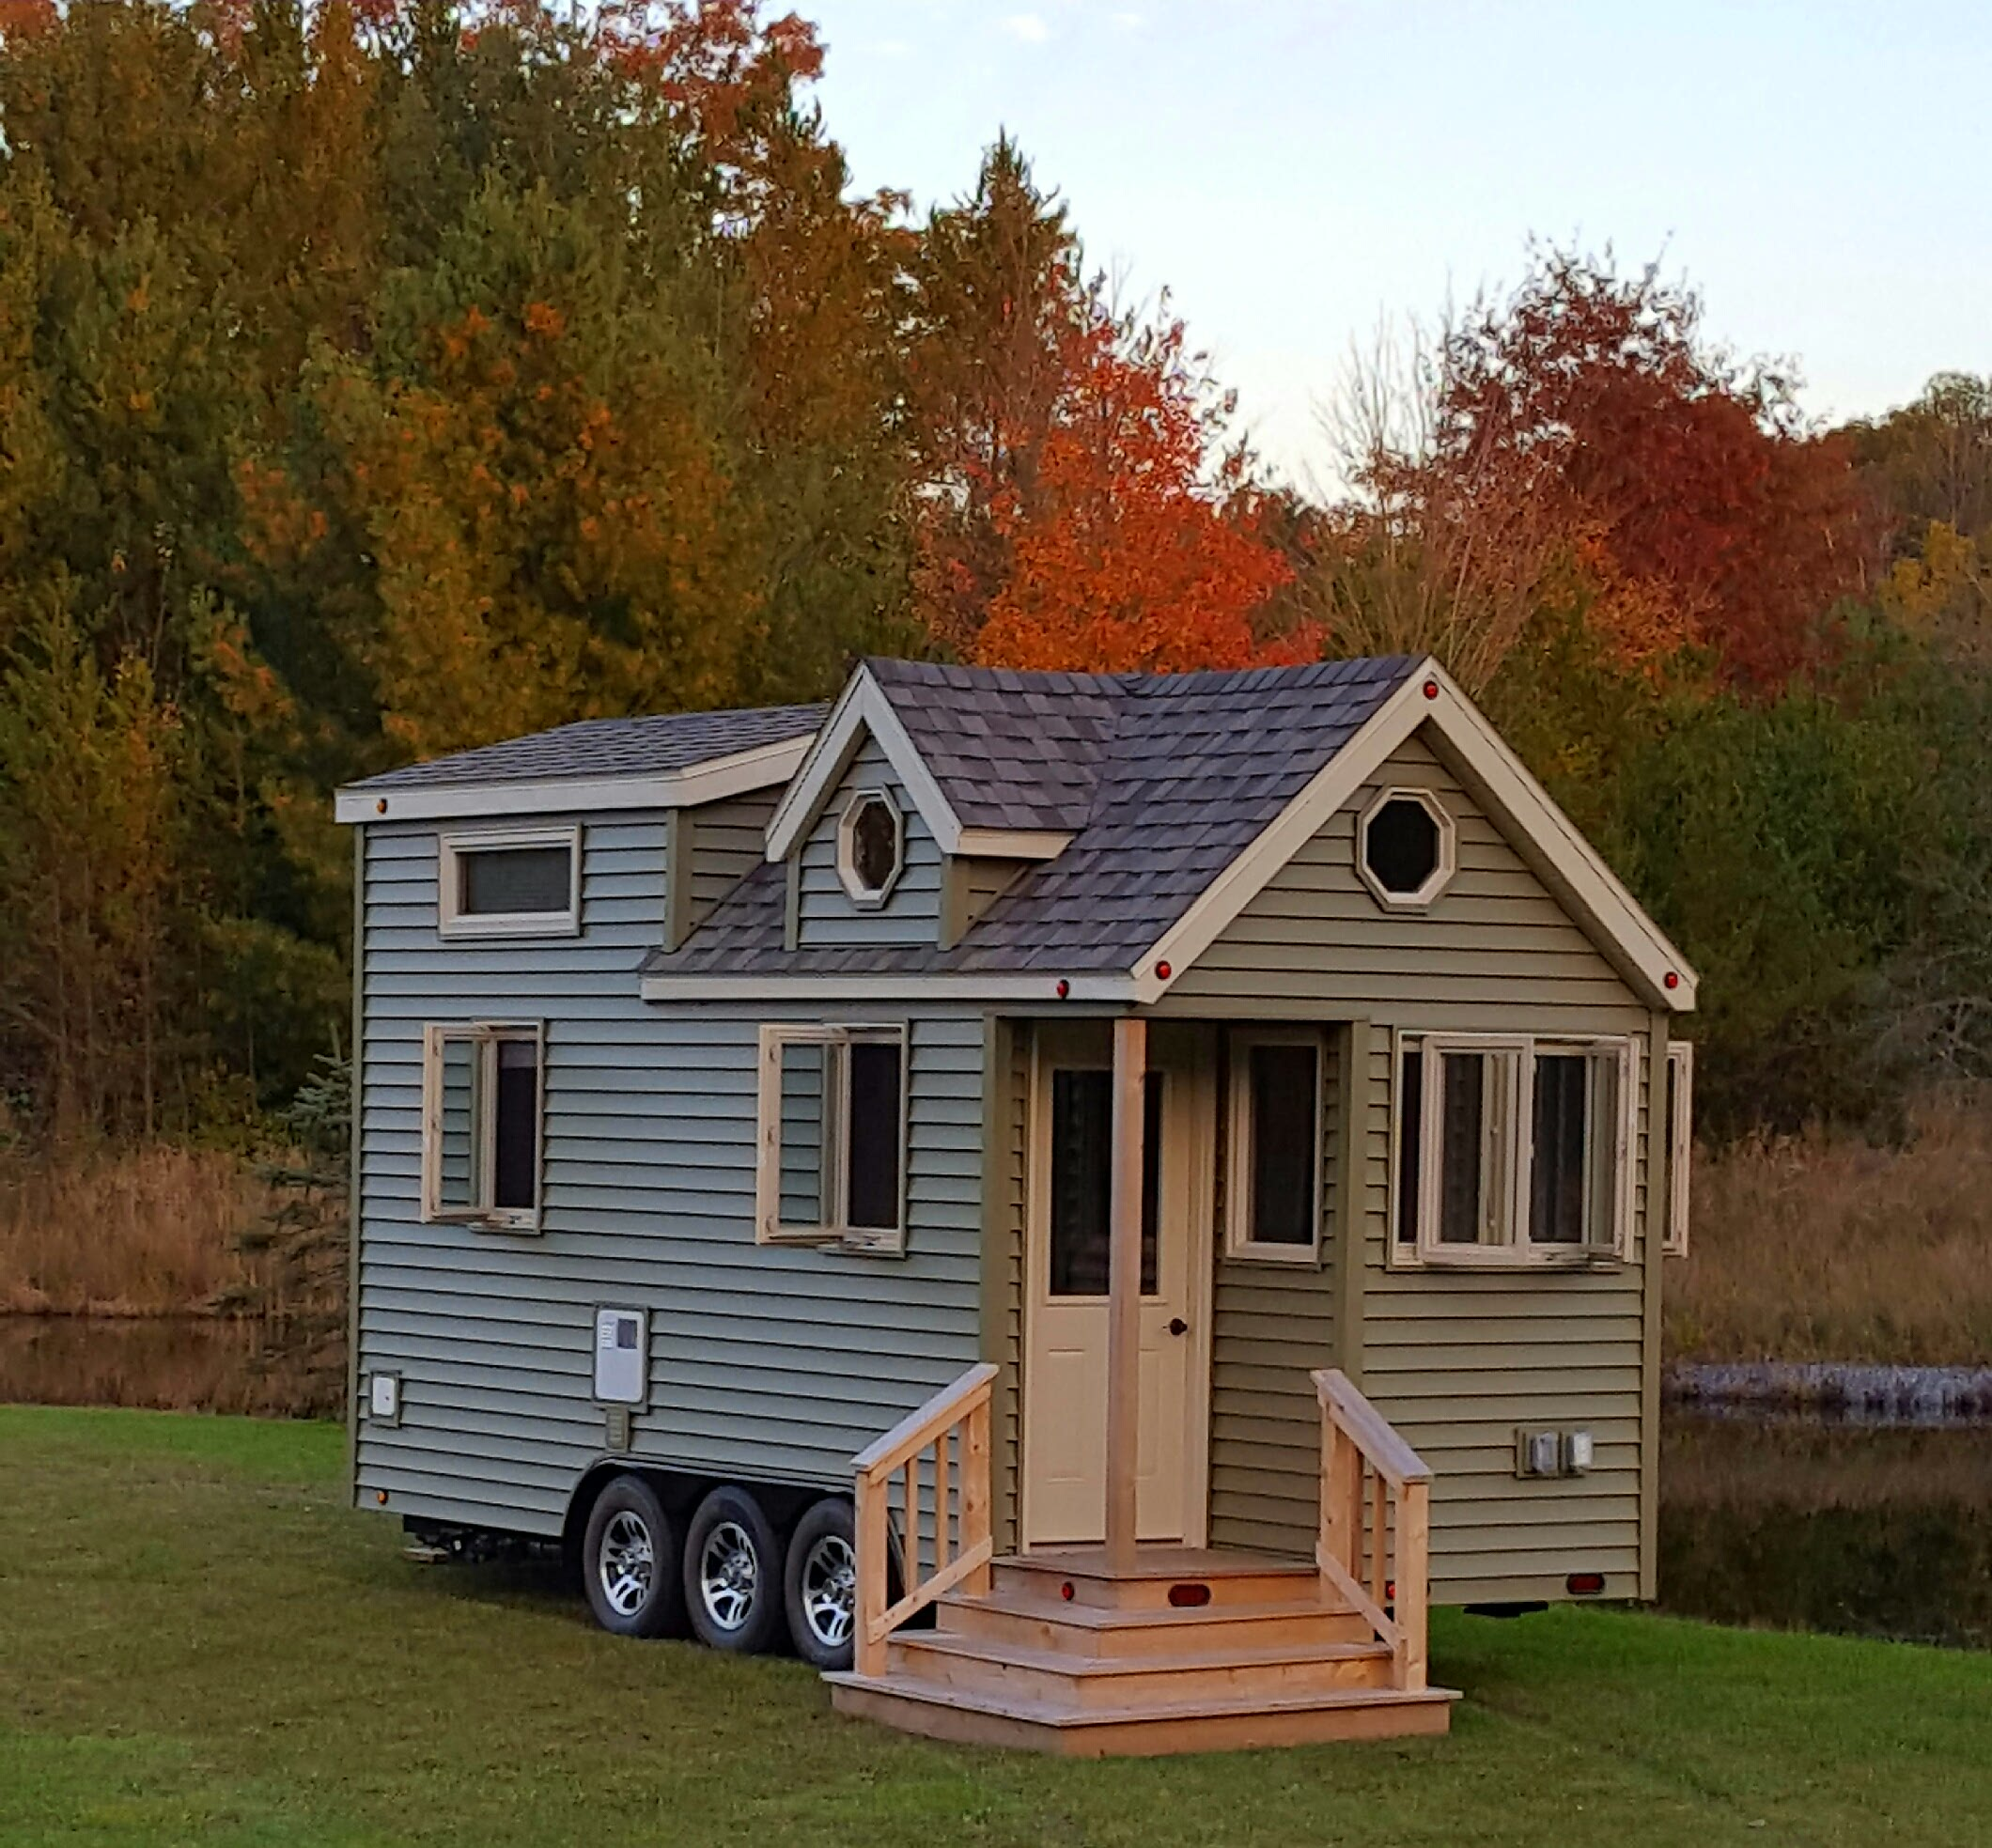 Tiny Home in Autumn